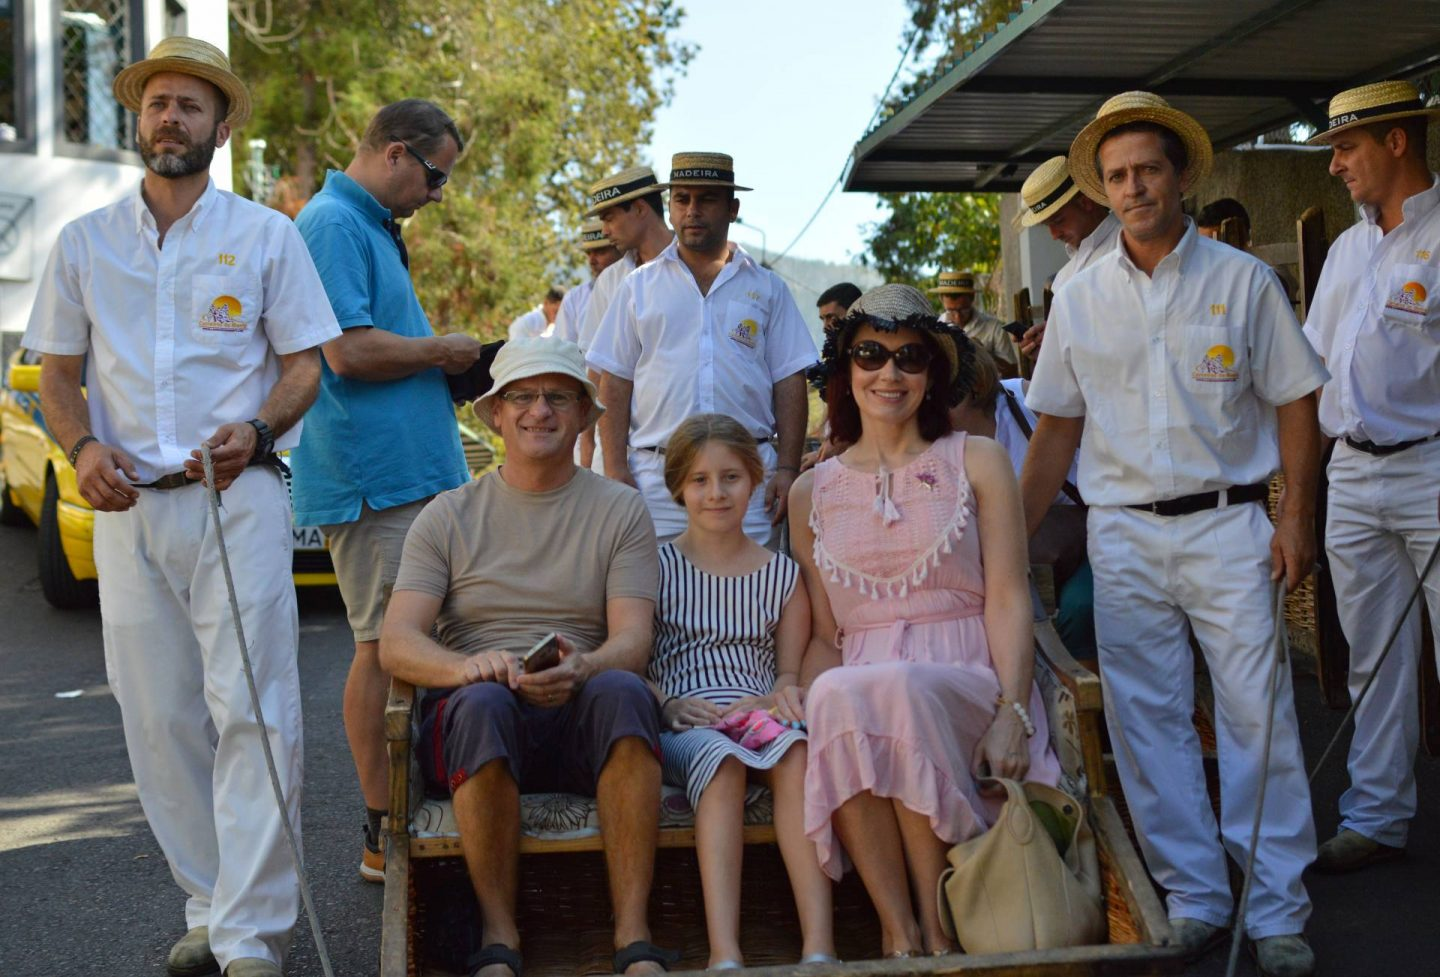 cable cars and toboggans, sightseeing in Madeira, wicker toboggans, Monte